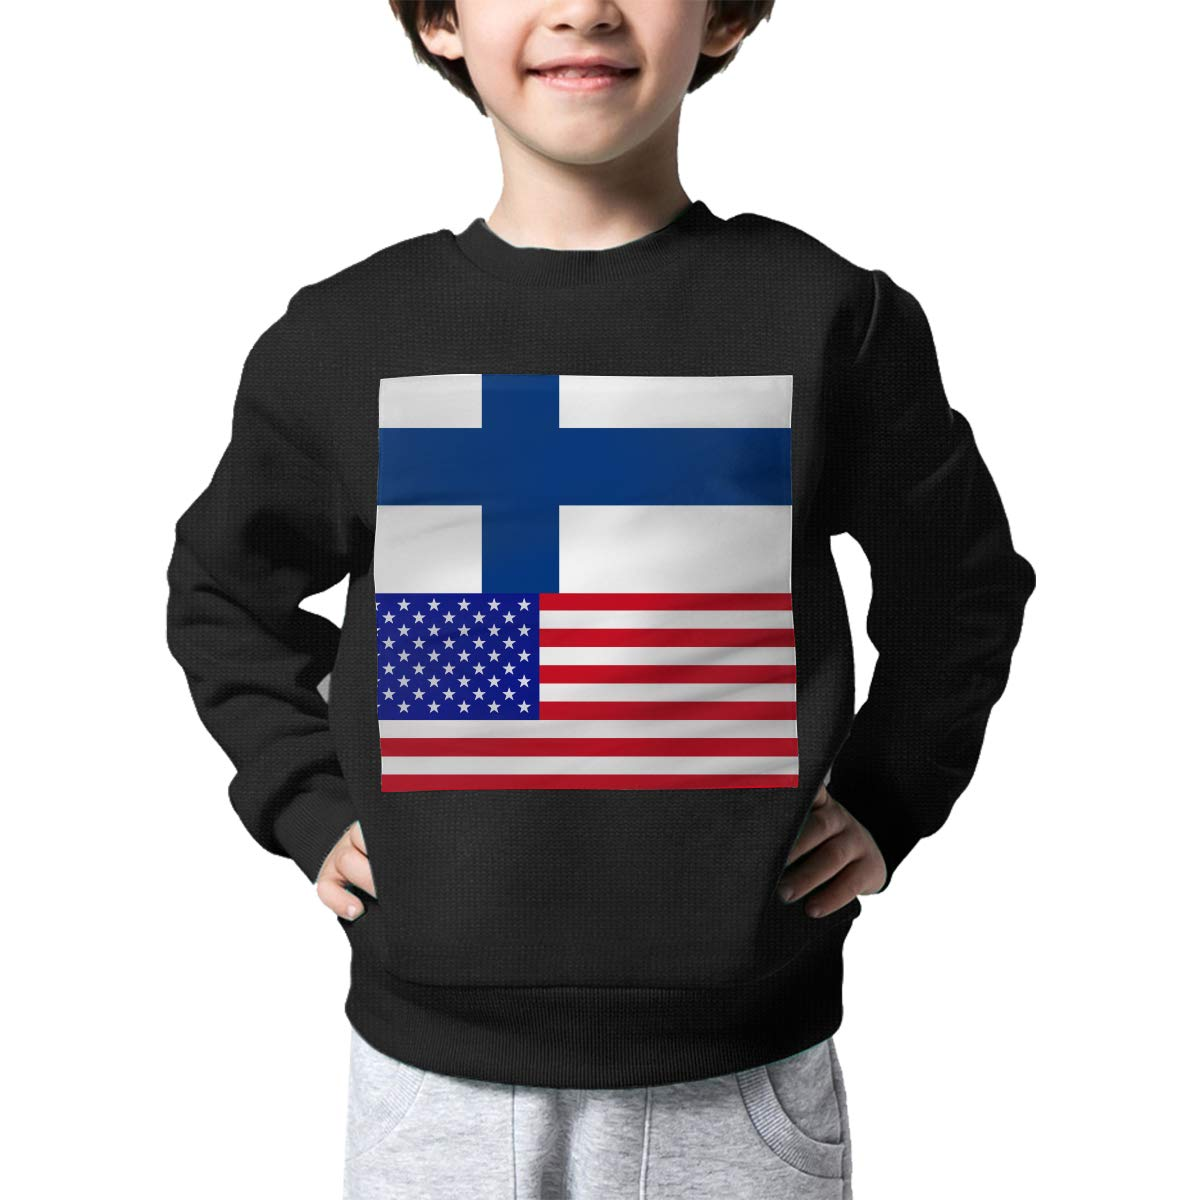 NJKM5MJ Boys Girls Finland-American Proud Lovely Sweaters Soft Warm Unisex Children Kids Sweater